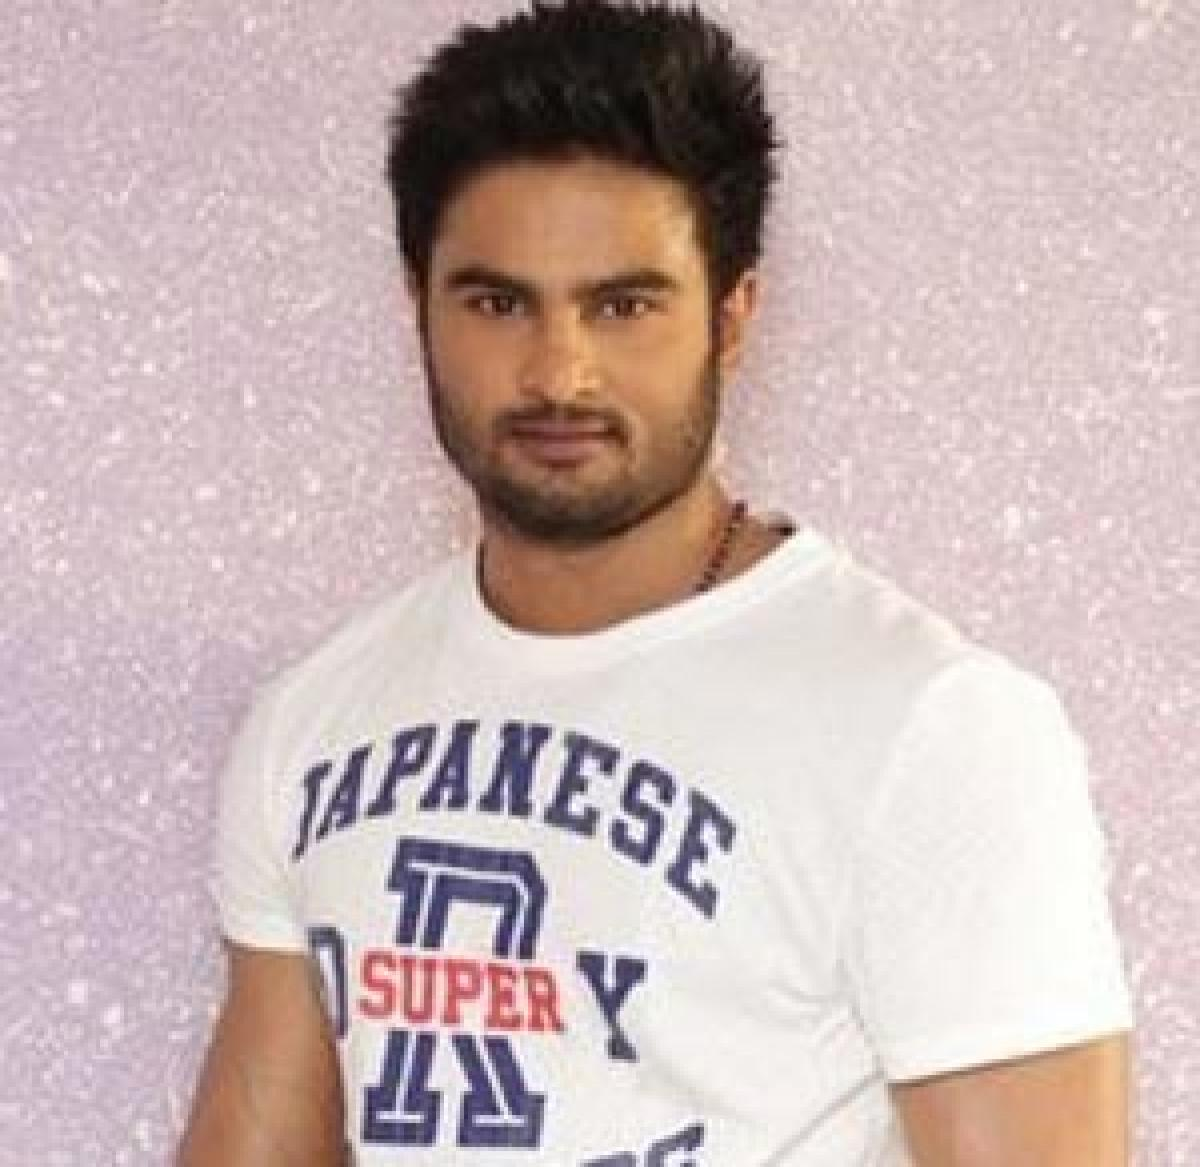 Debutant filmmakers come up with fresh ideas: Sudheer